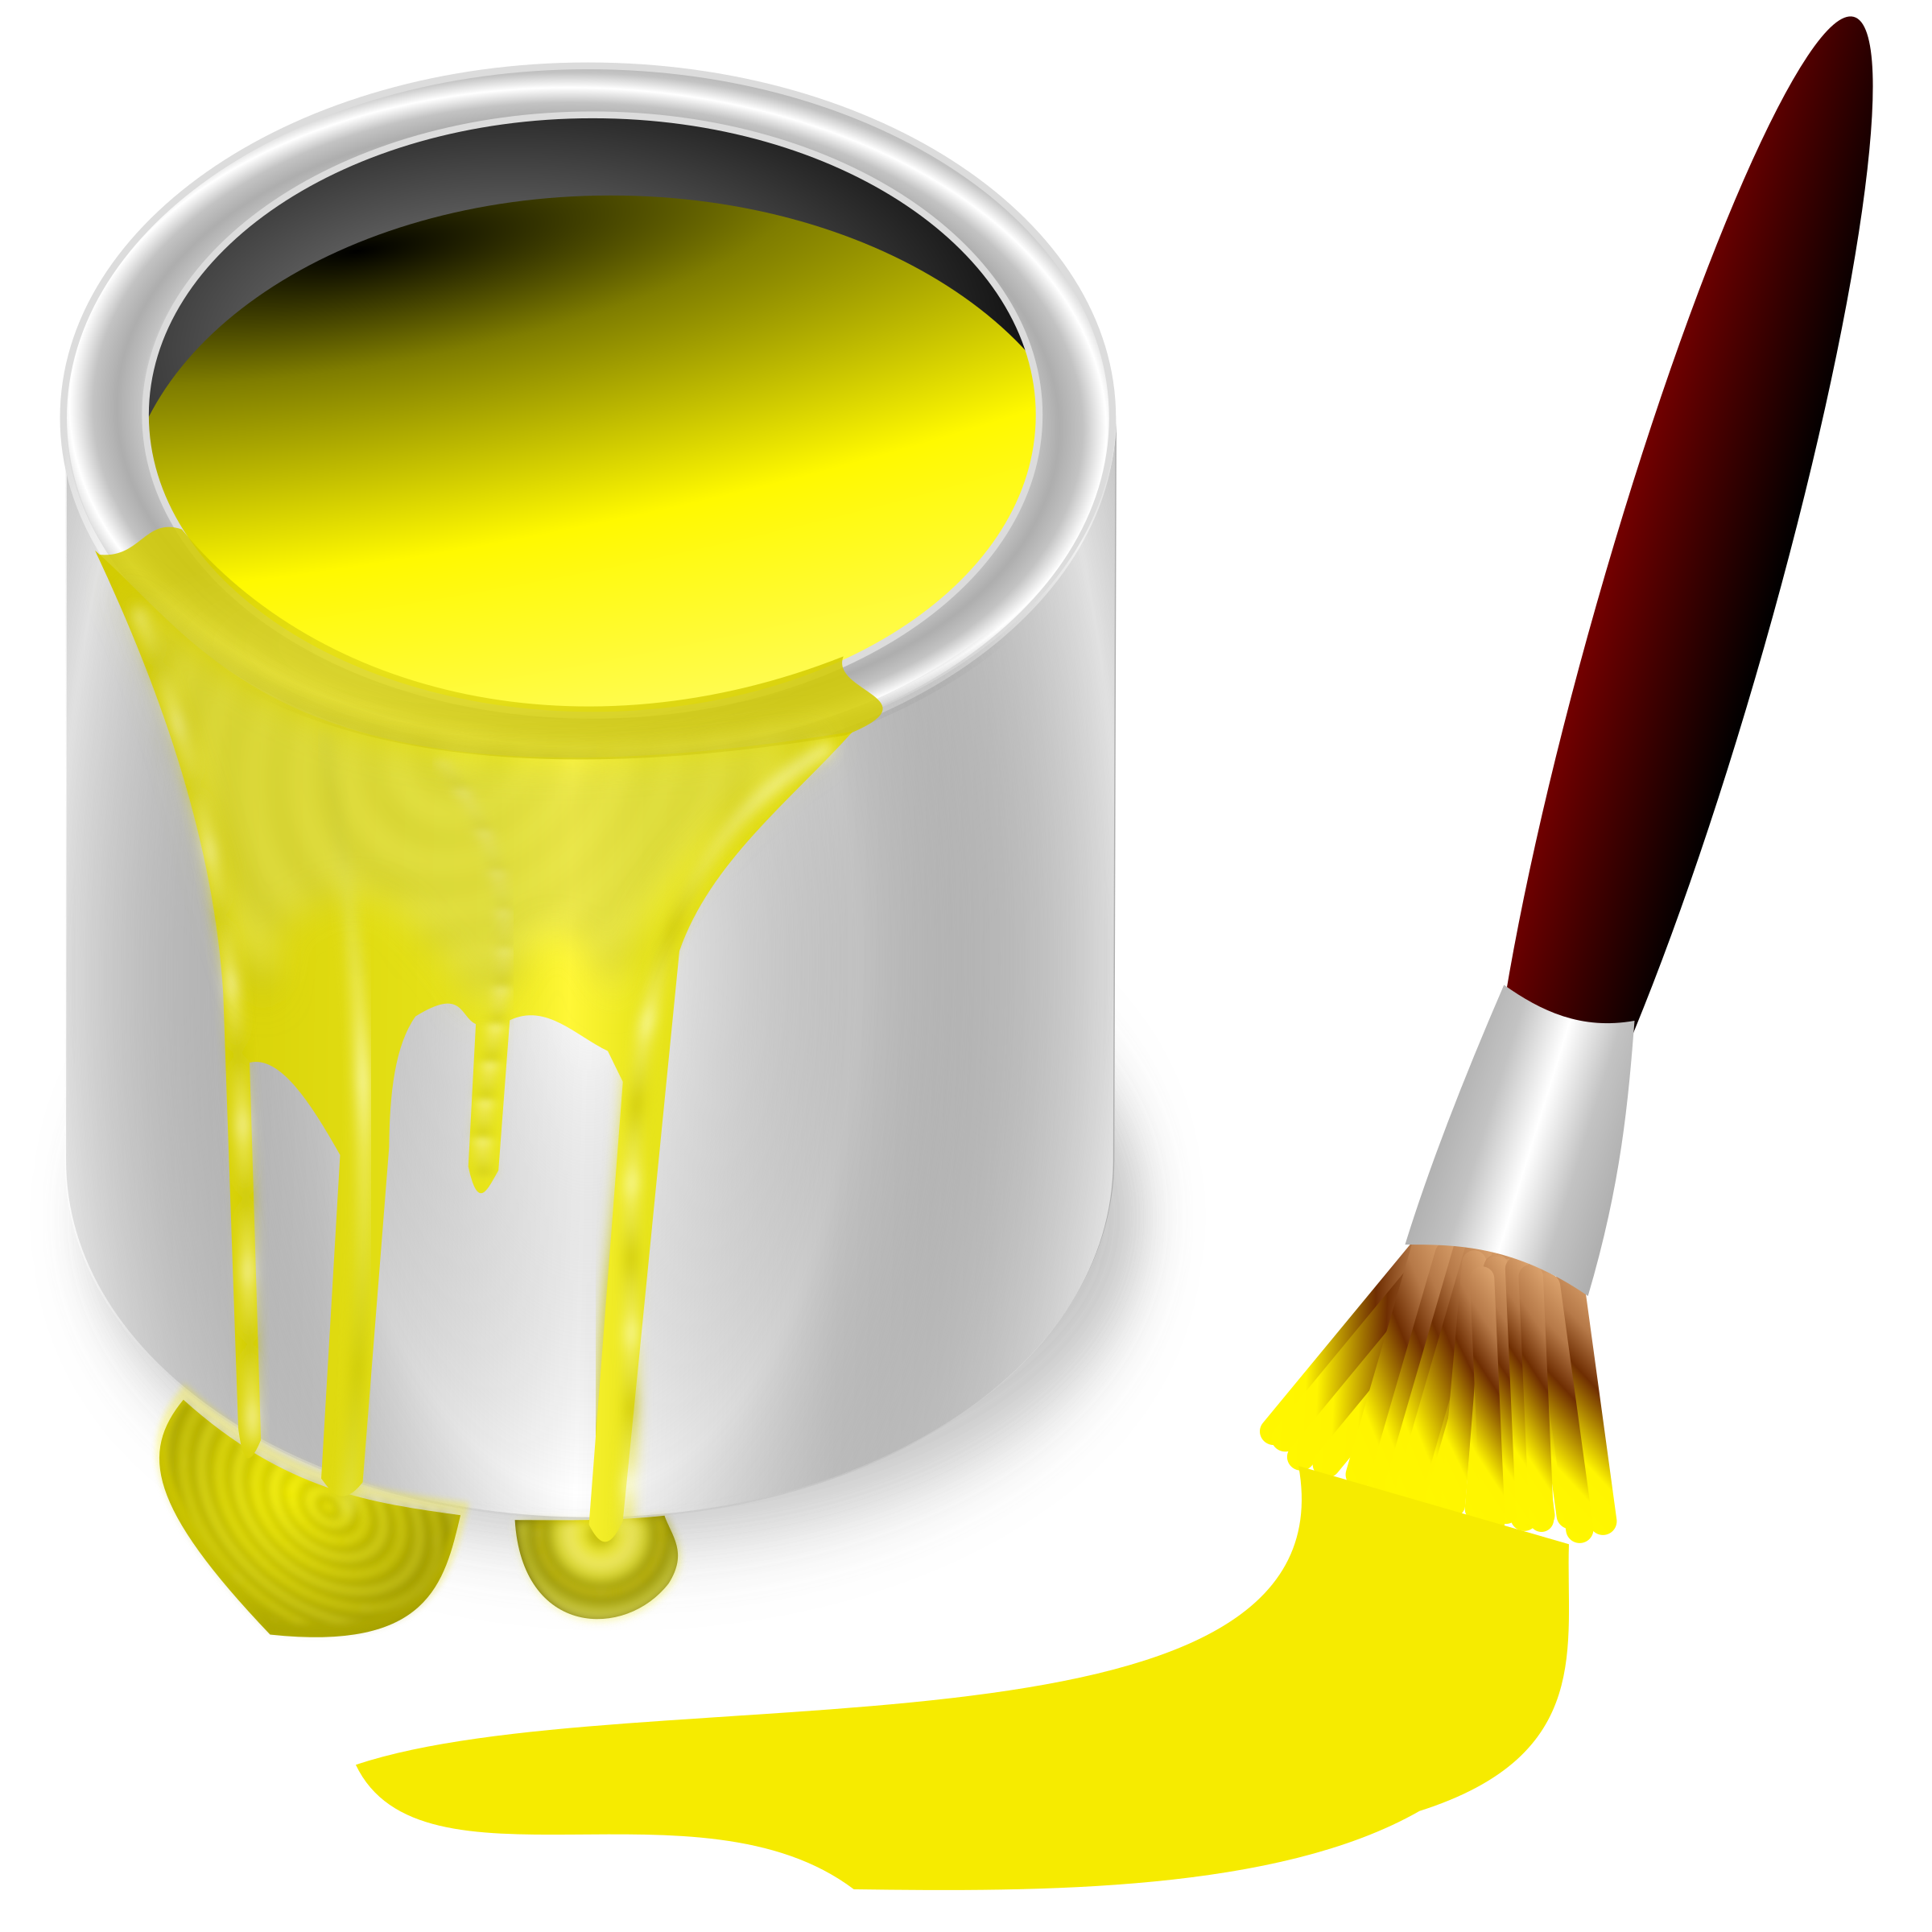 clipart library download Bucket clipart colour. Color yellow big image